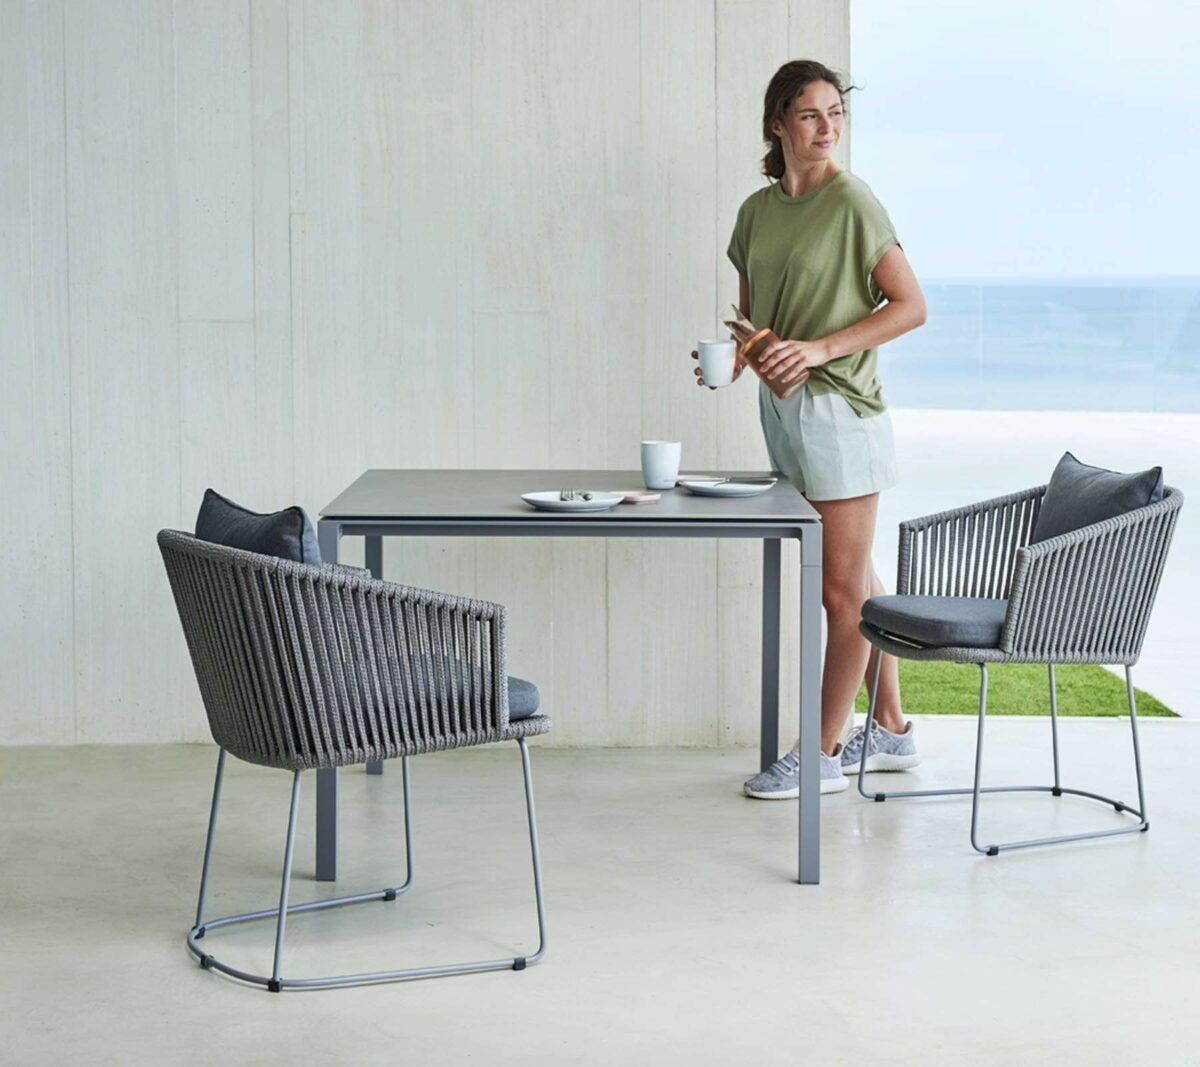 Moments 0005 Moments chair pure dining table 4 1571336101 d0820a95 6574 43ac 946e ac98d5abb6e1